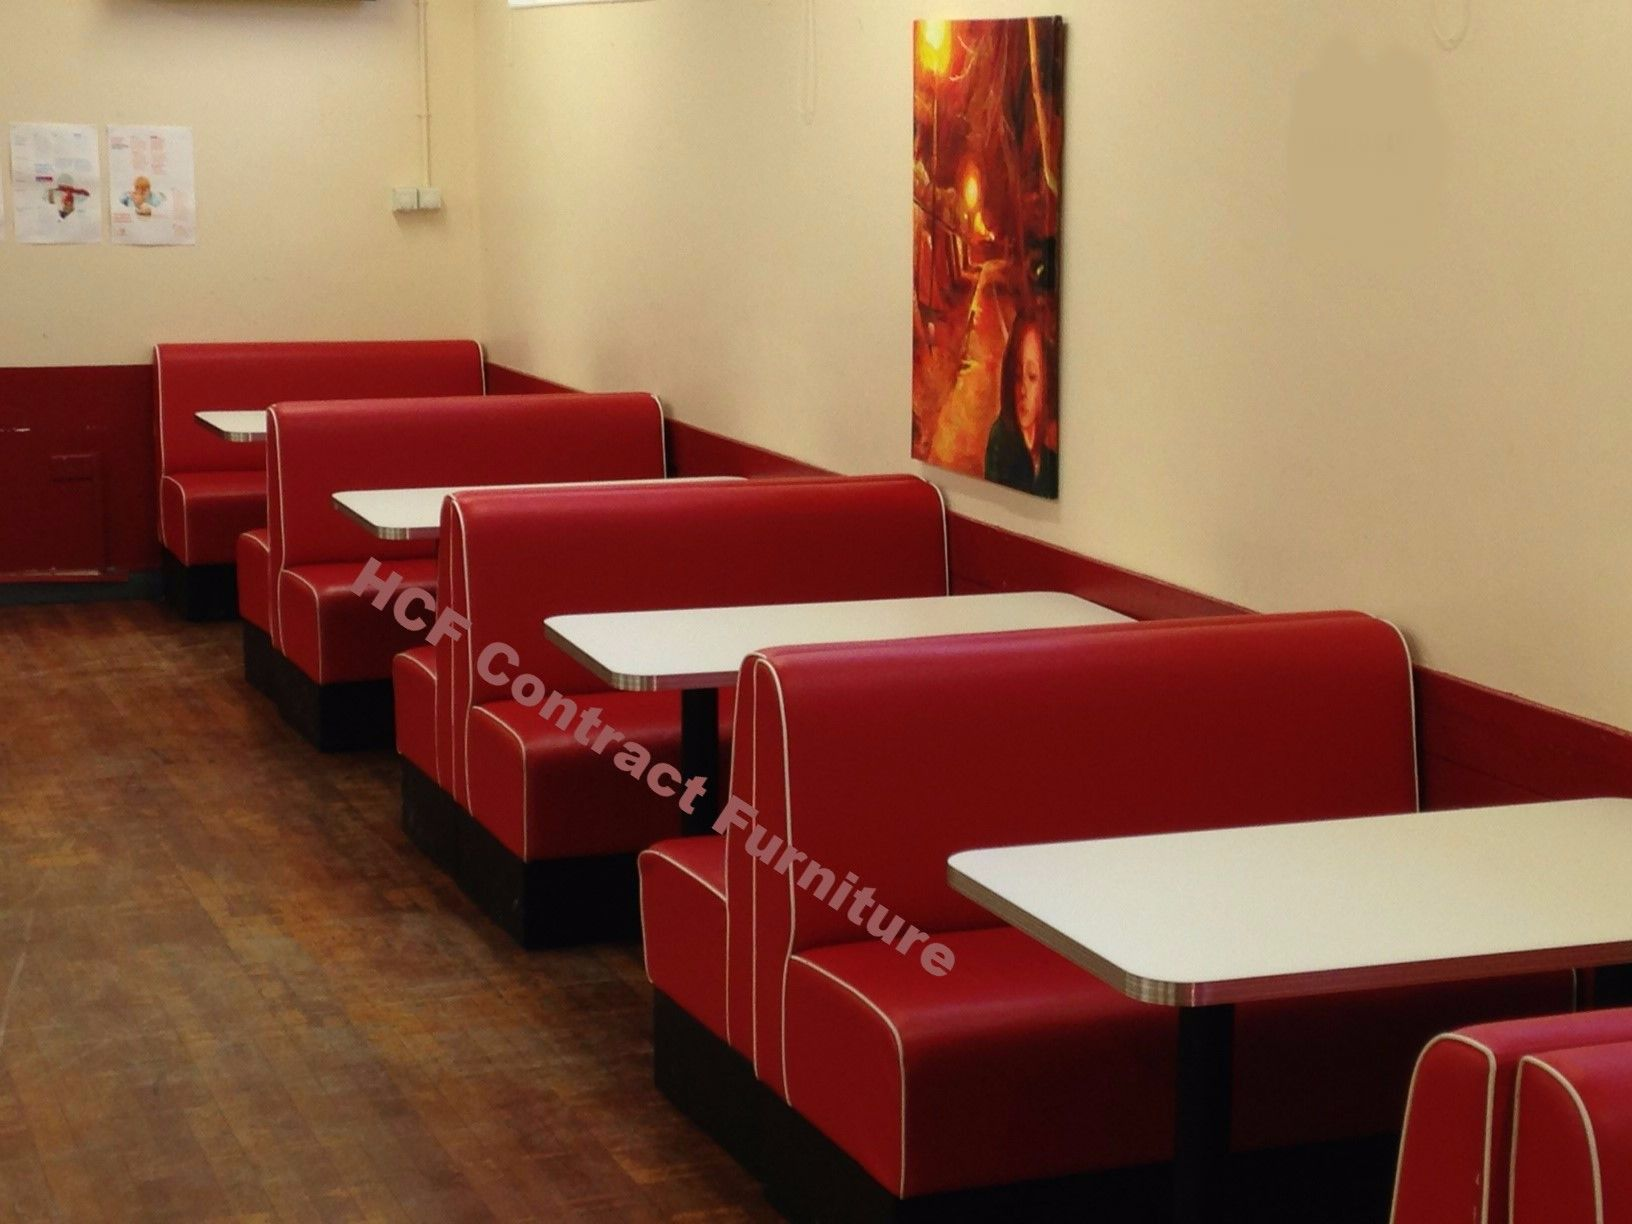 Sofa Cafe Restaurant Upholstered Restaurant Booths Fixed Bench Bar Seating